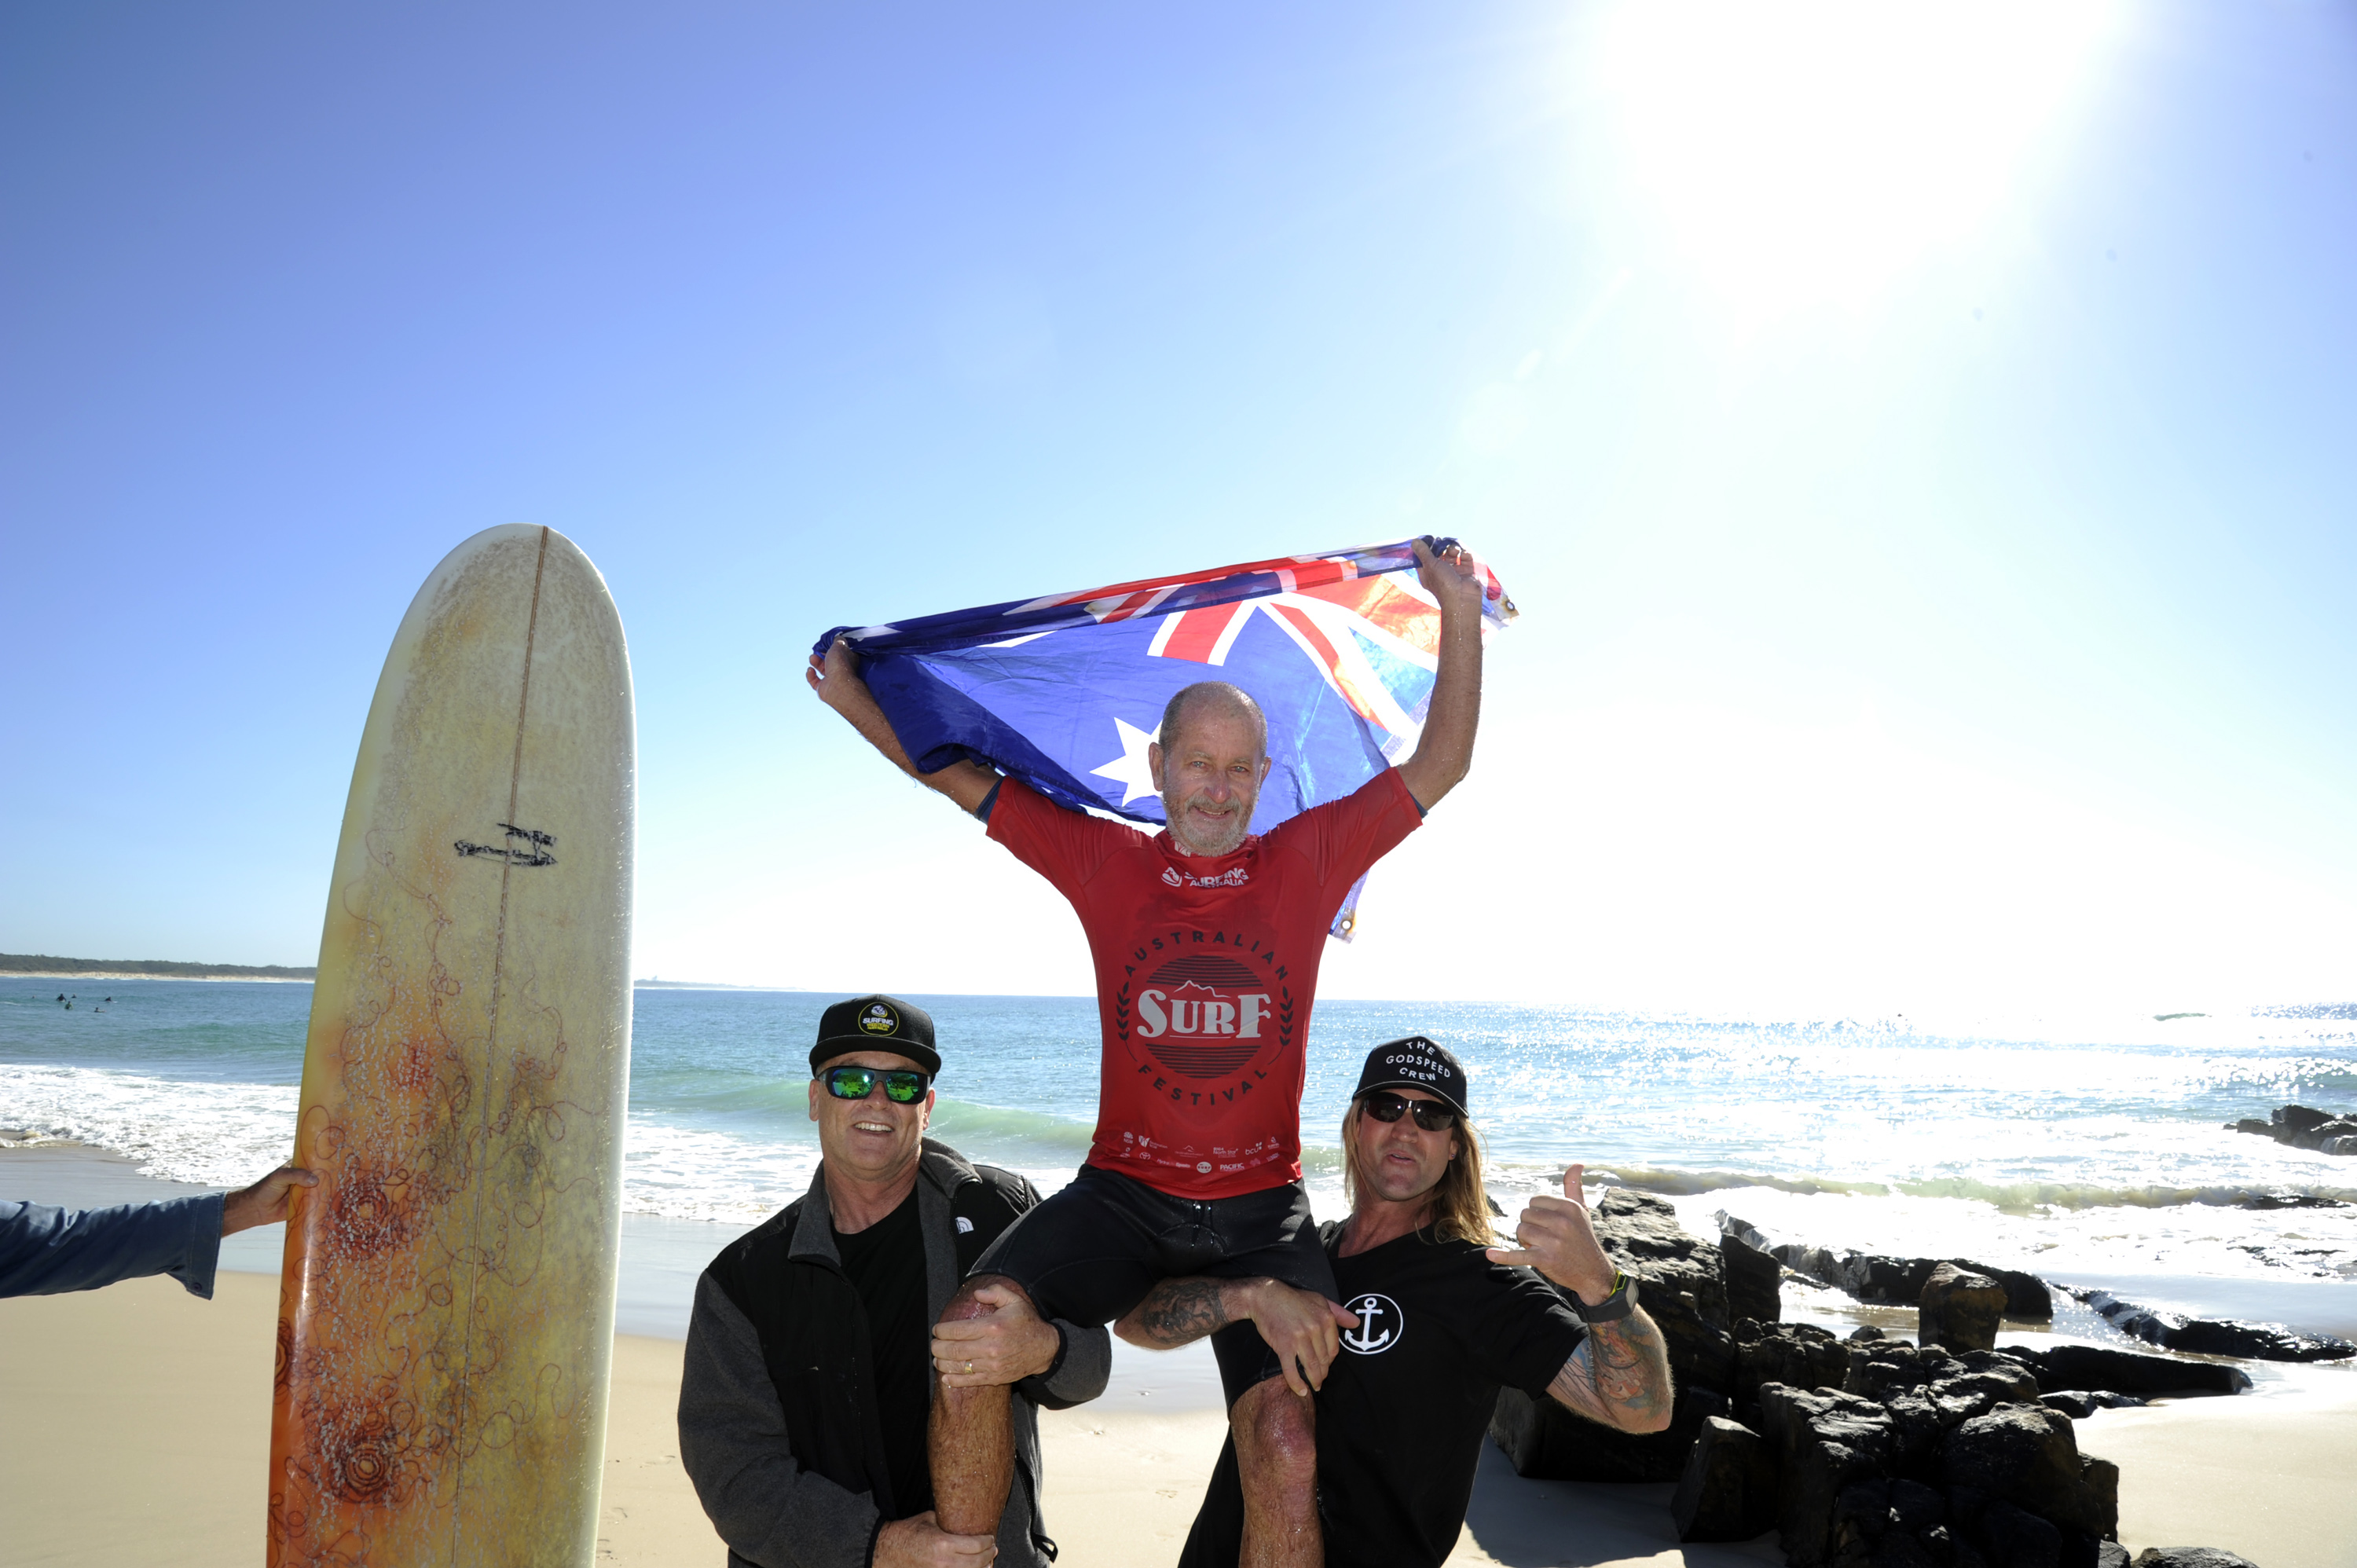 Yallingup's Bob Monkman Wins Over-60 Men's Australian Longboard Title. Surfing Aus